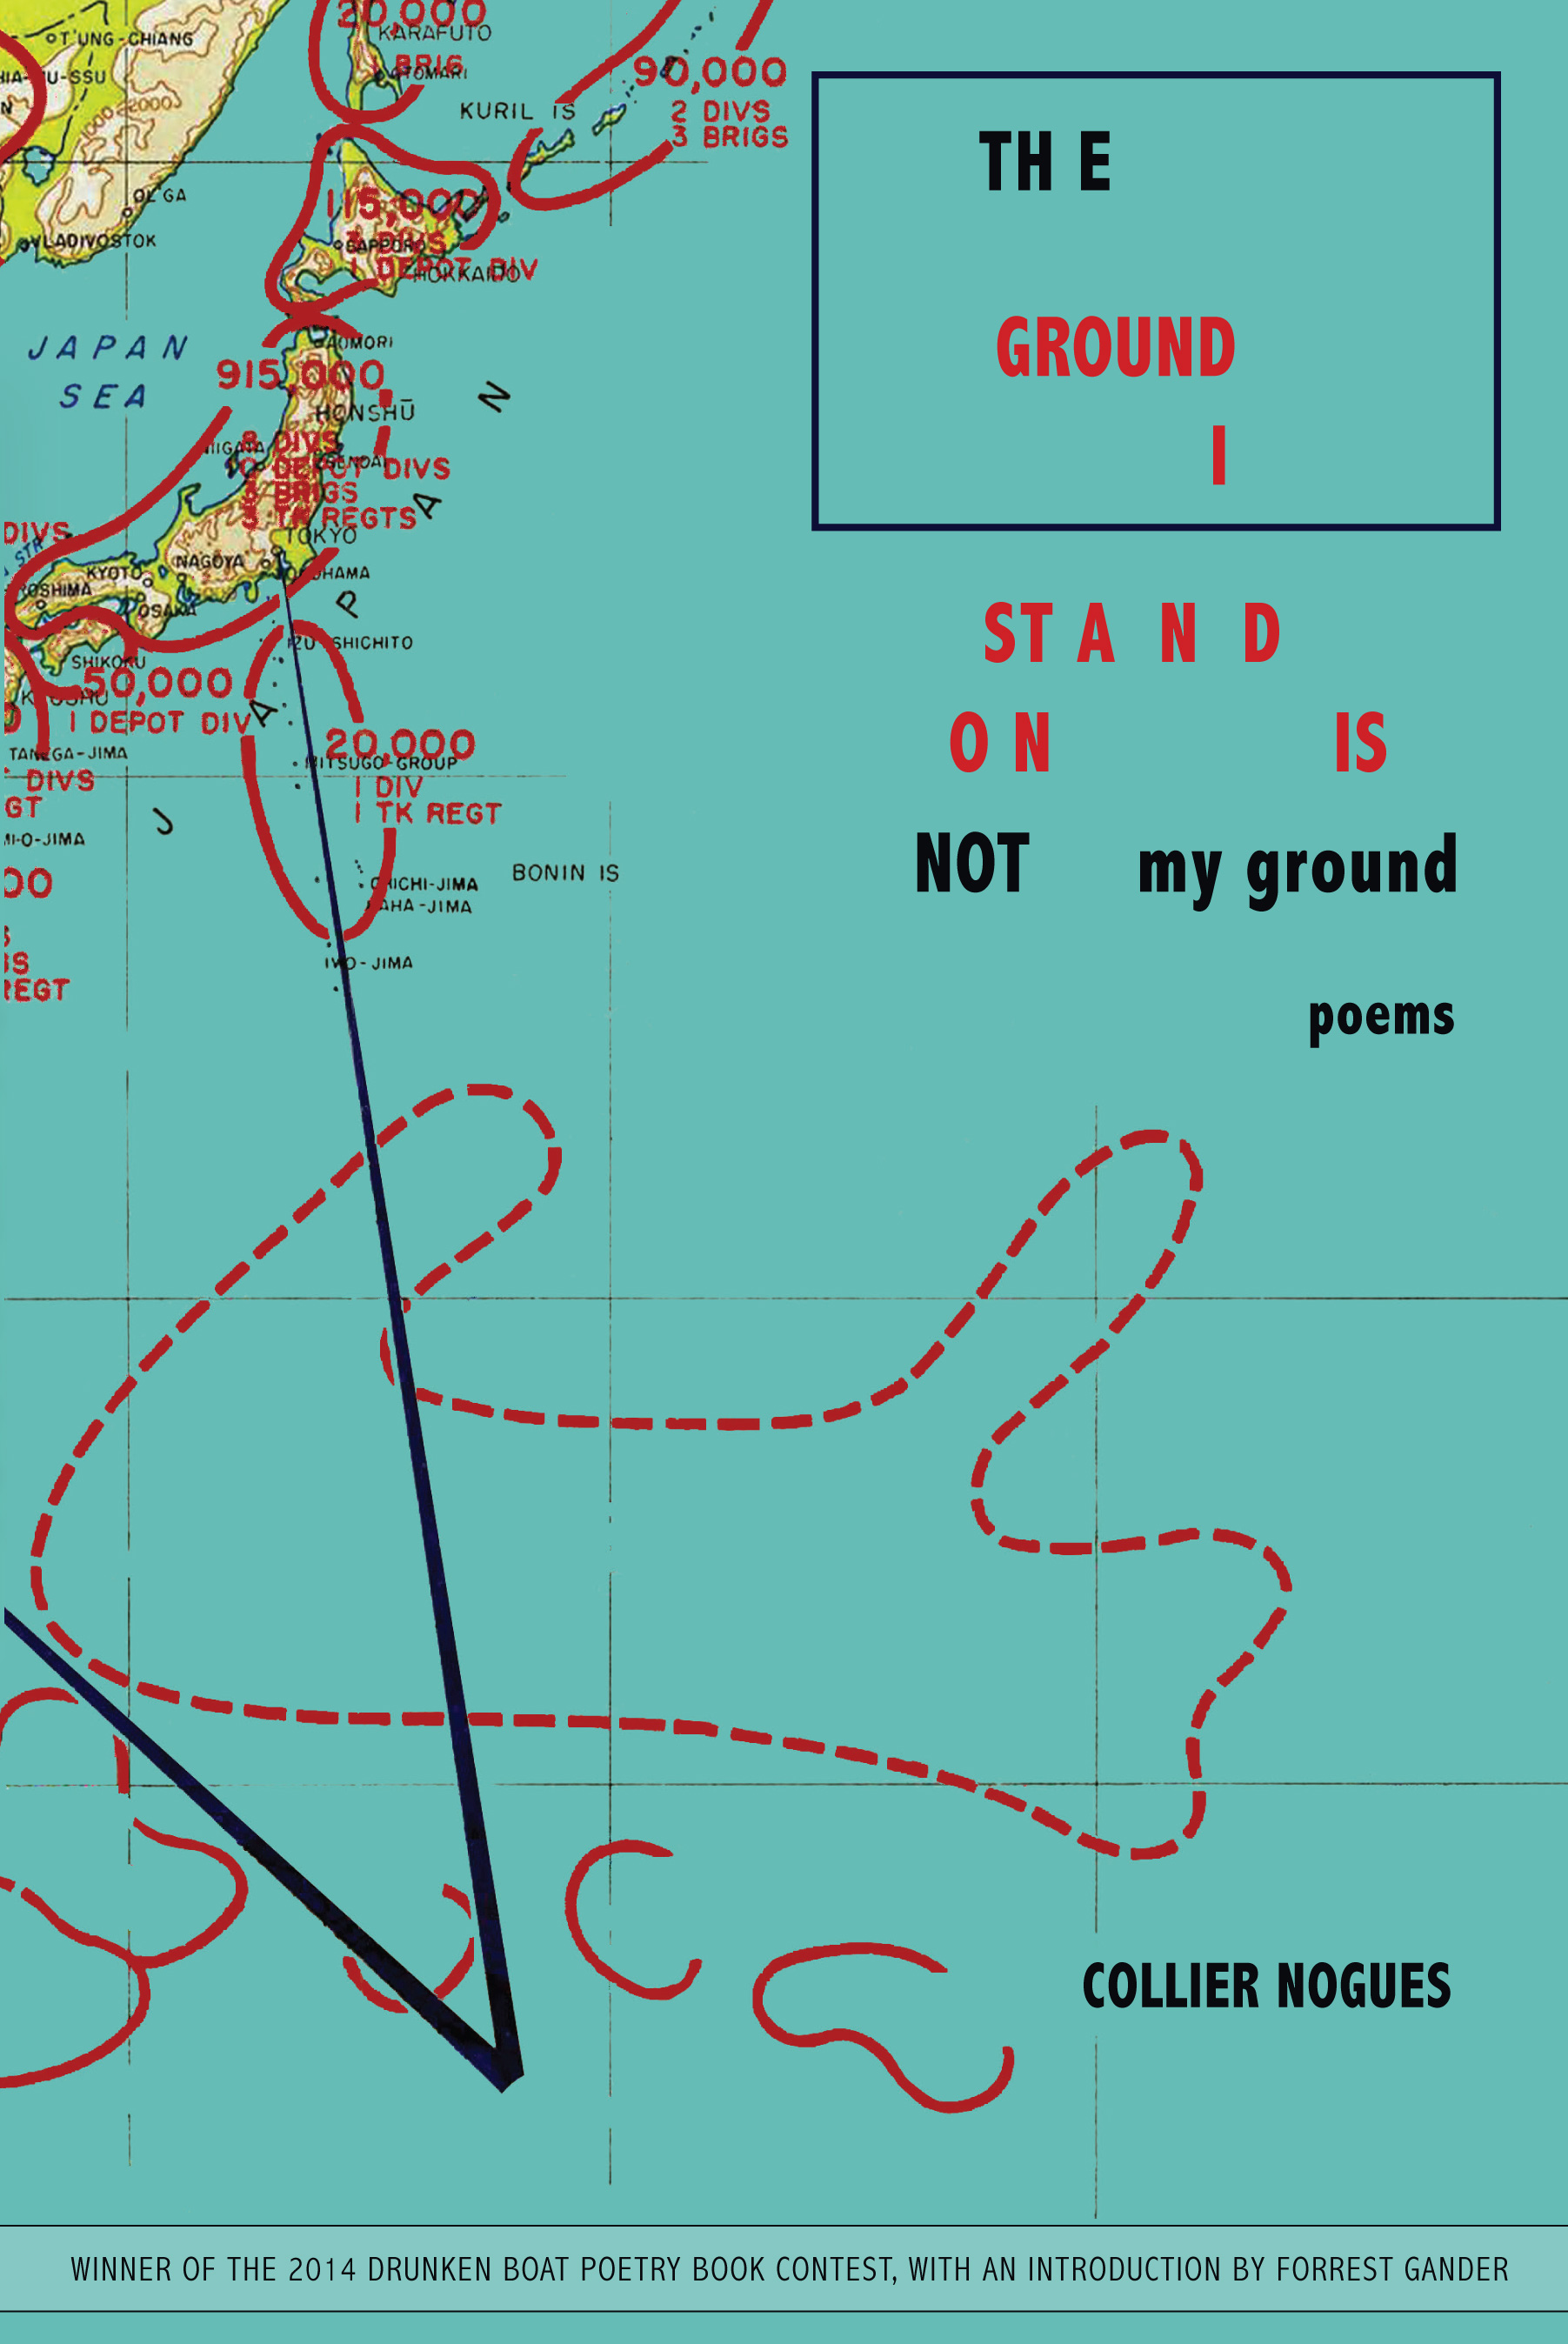 The_Ground_2_front_cover_only.jpg